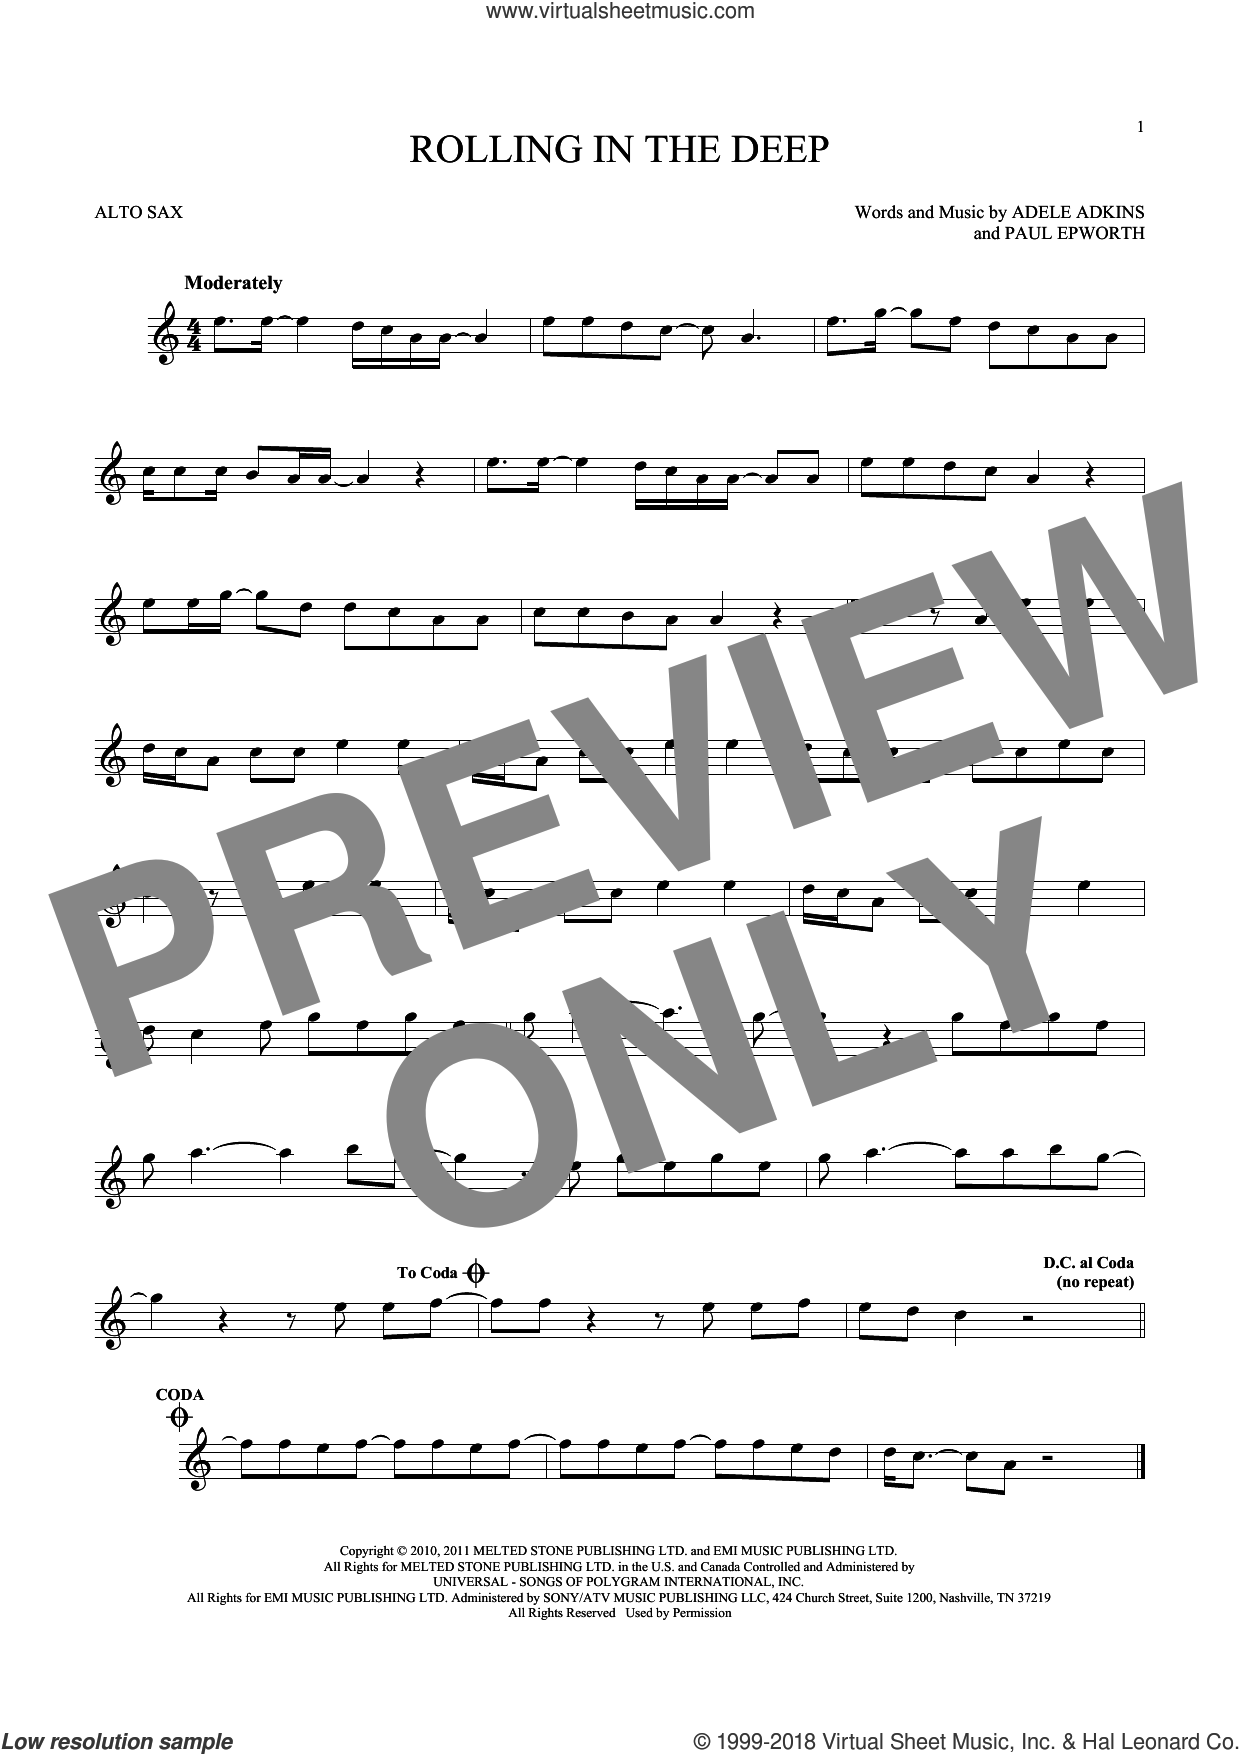 Rolling In The Deep sheet music for alto saxophone solo ( Sax) by Adele and Paul Epworth, intermediate alto saxophone ( Sax). Score Image Preview.